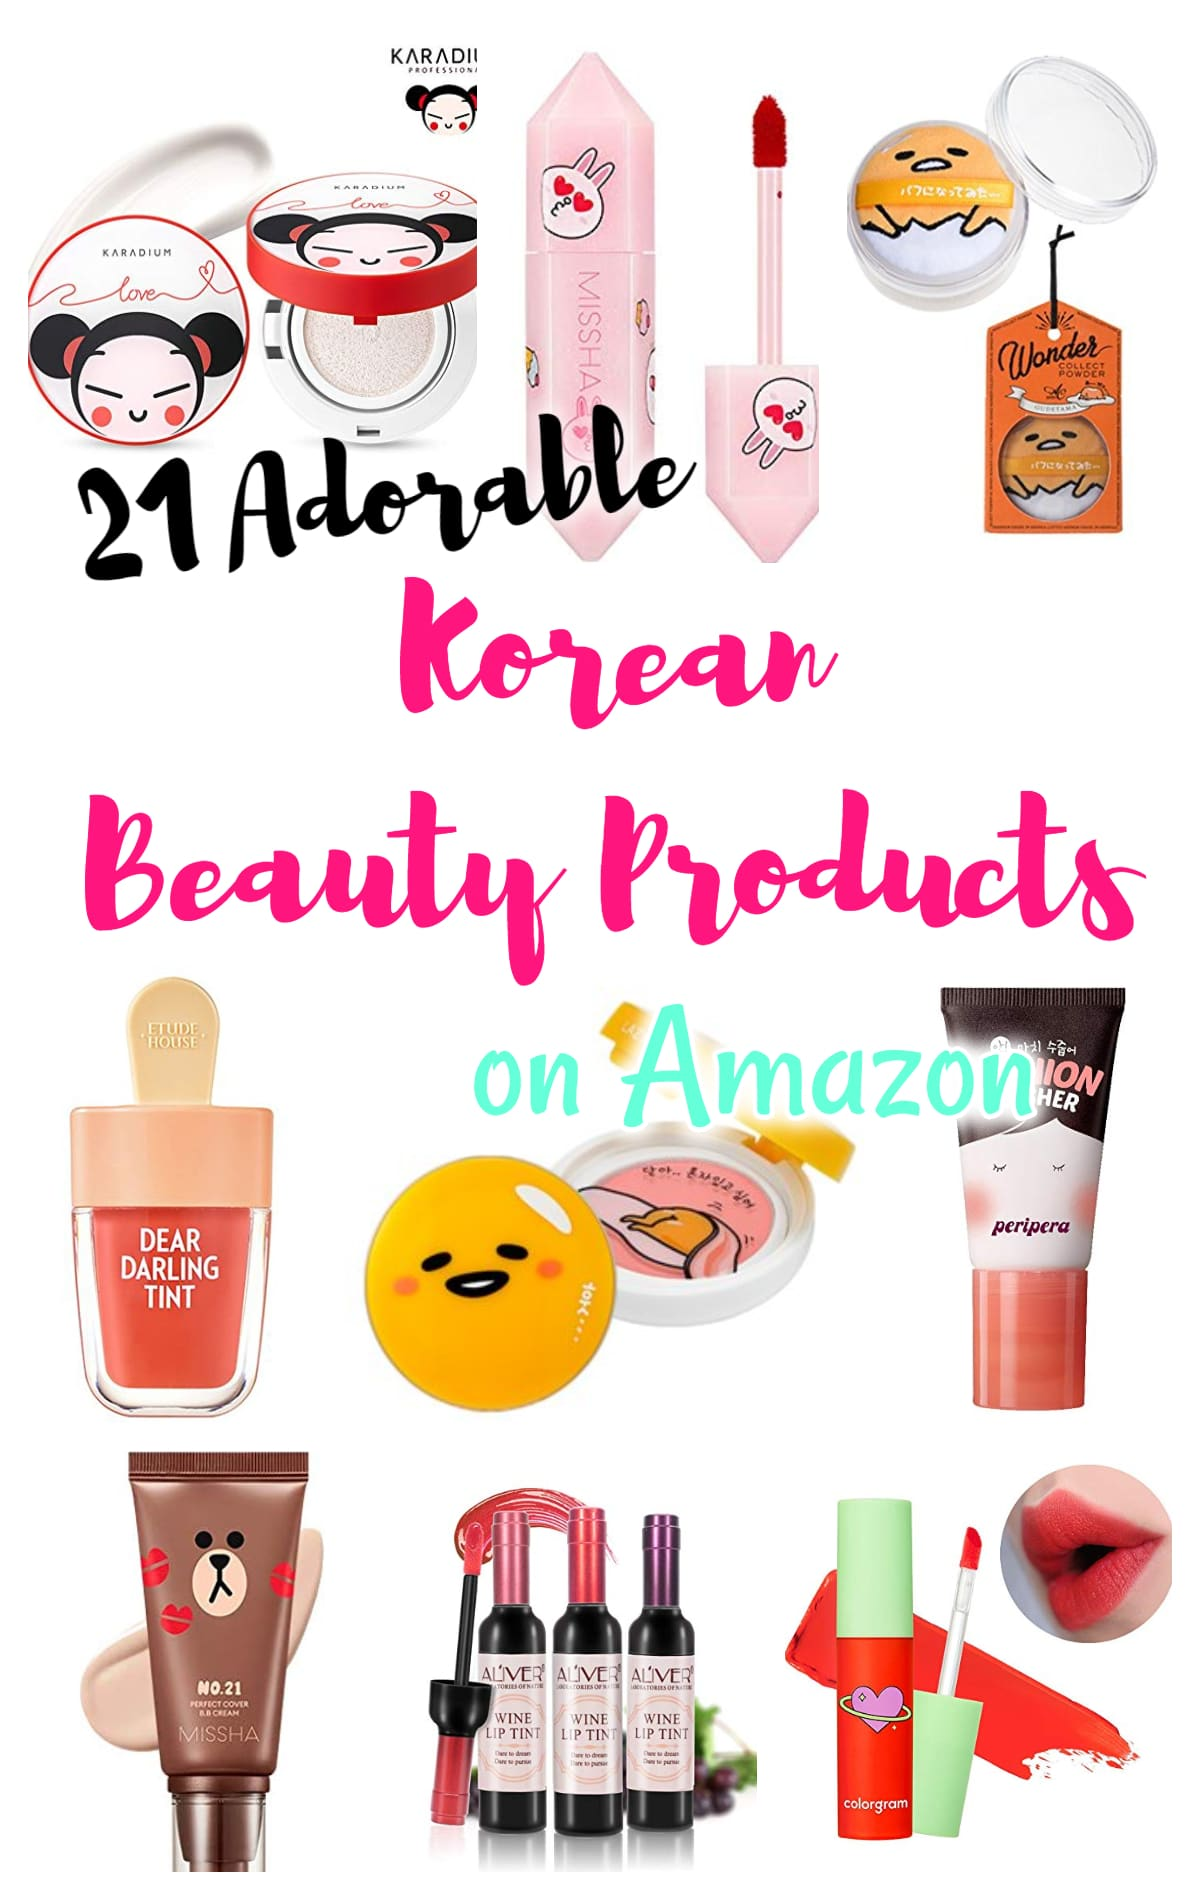 21 Adorable Korean Beauty Products on Amazon